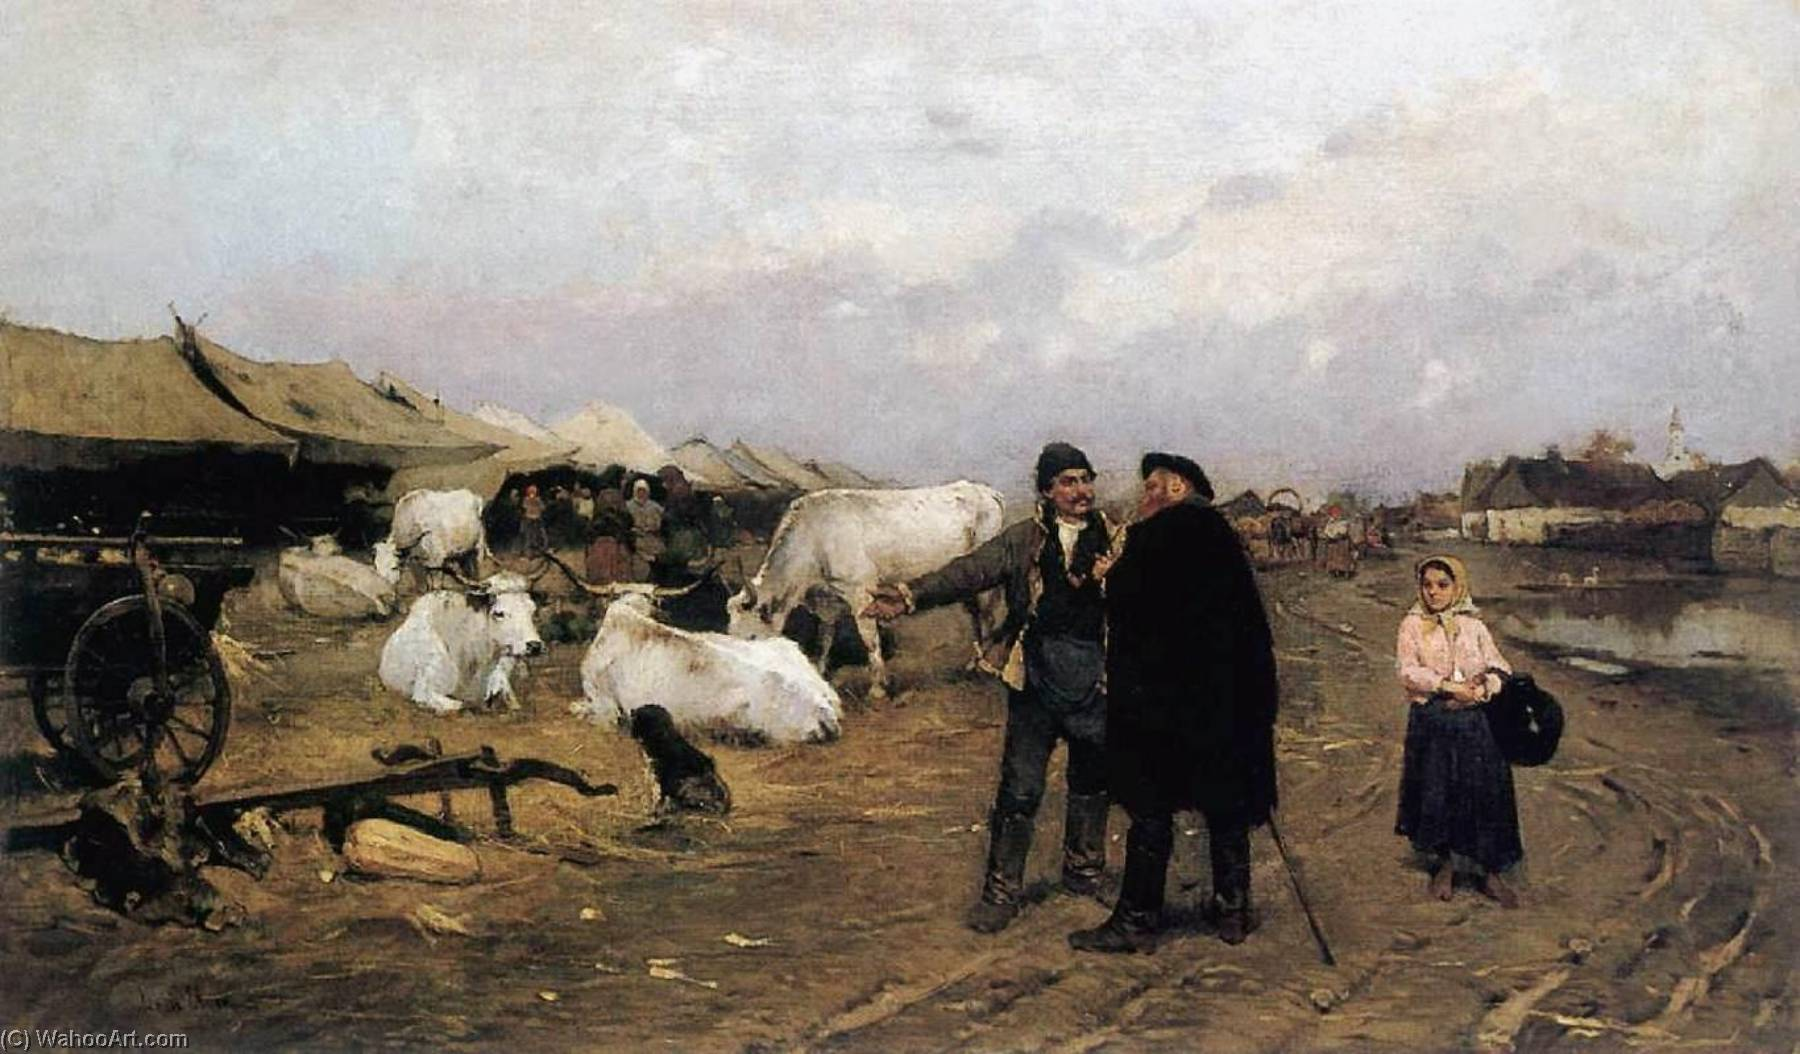 Market Scene, 1885 by Lajos Deák Ébner | Art Reproduction | WahooArt.com